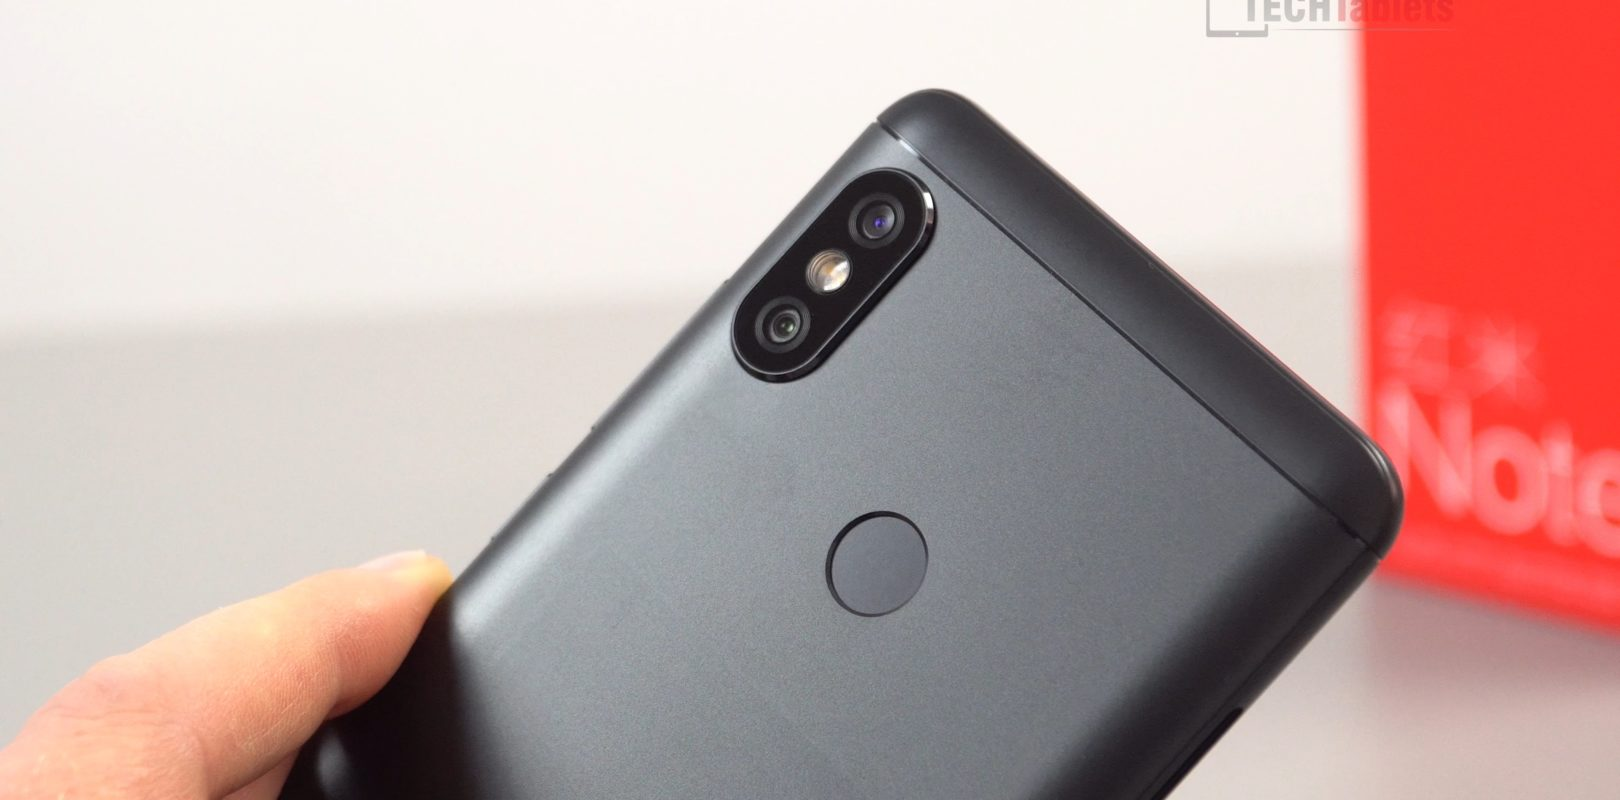 Xiaomi Redmi Note 5 Chinese Model With Upgraded Camera